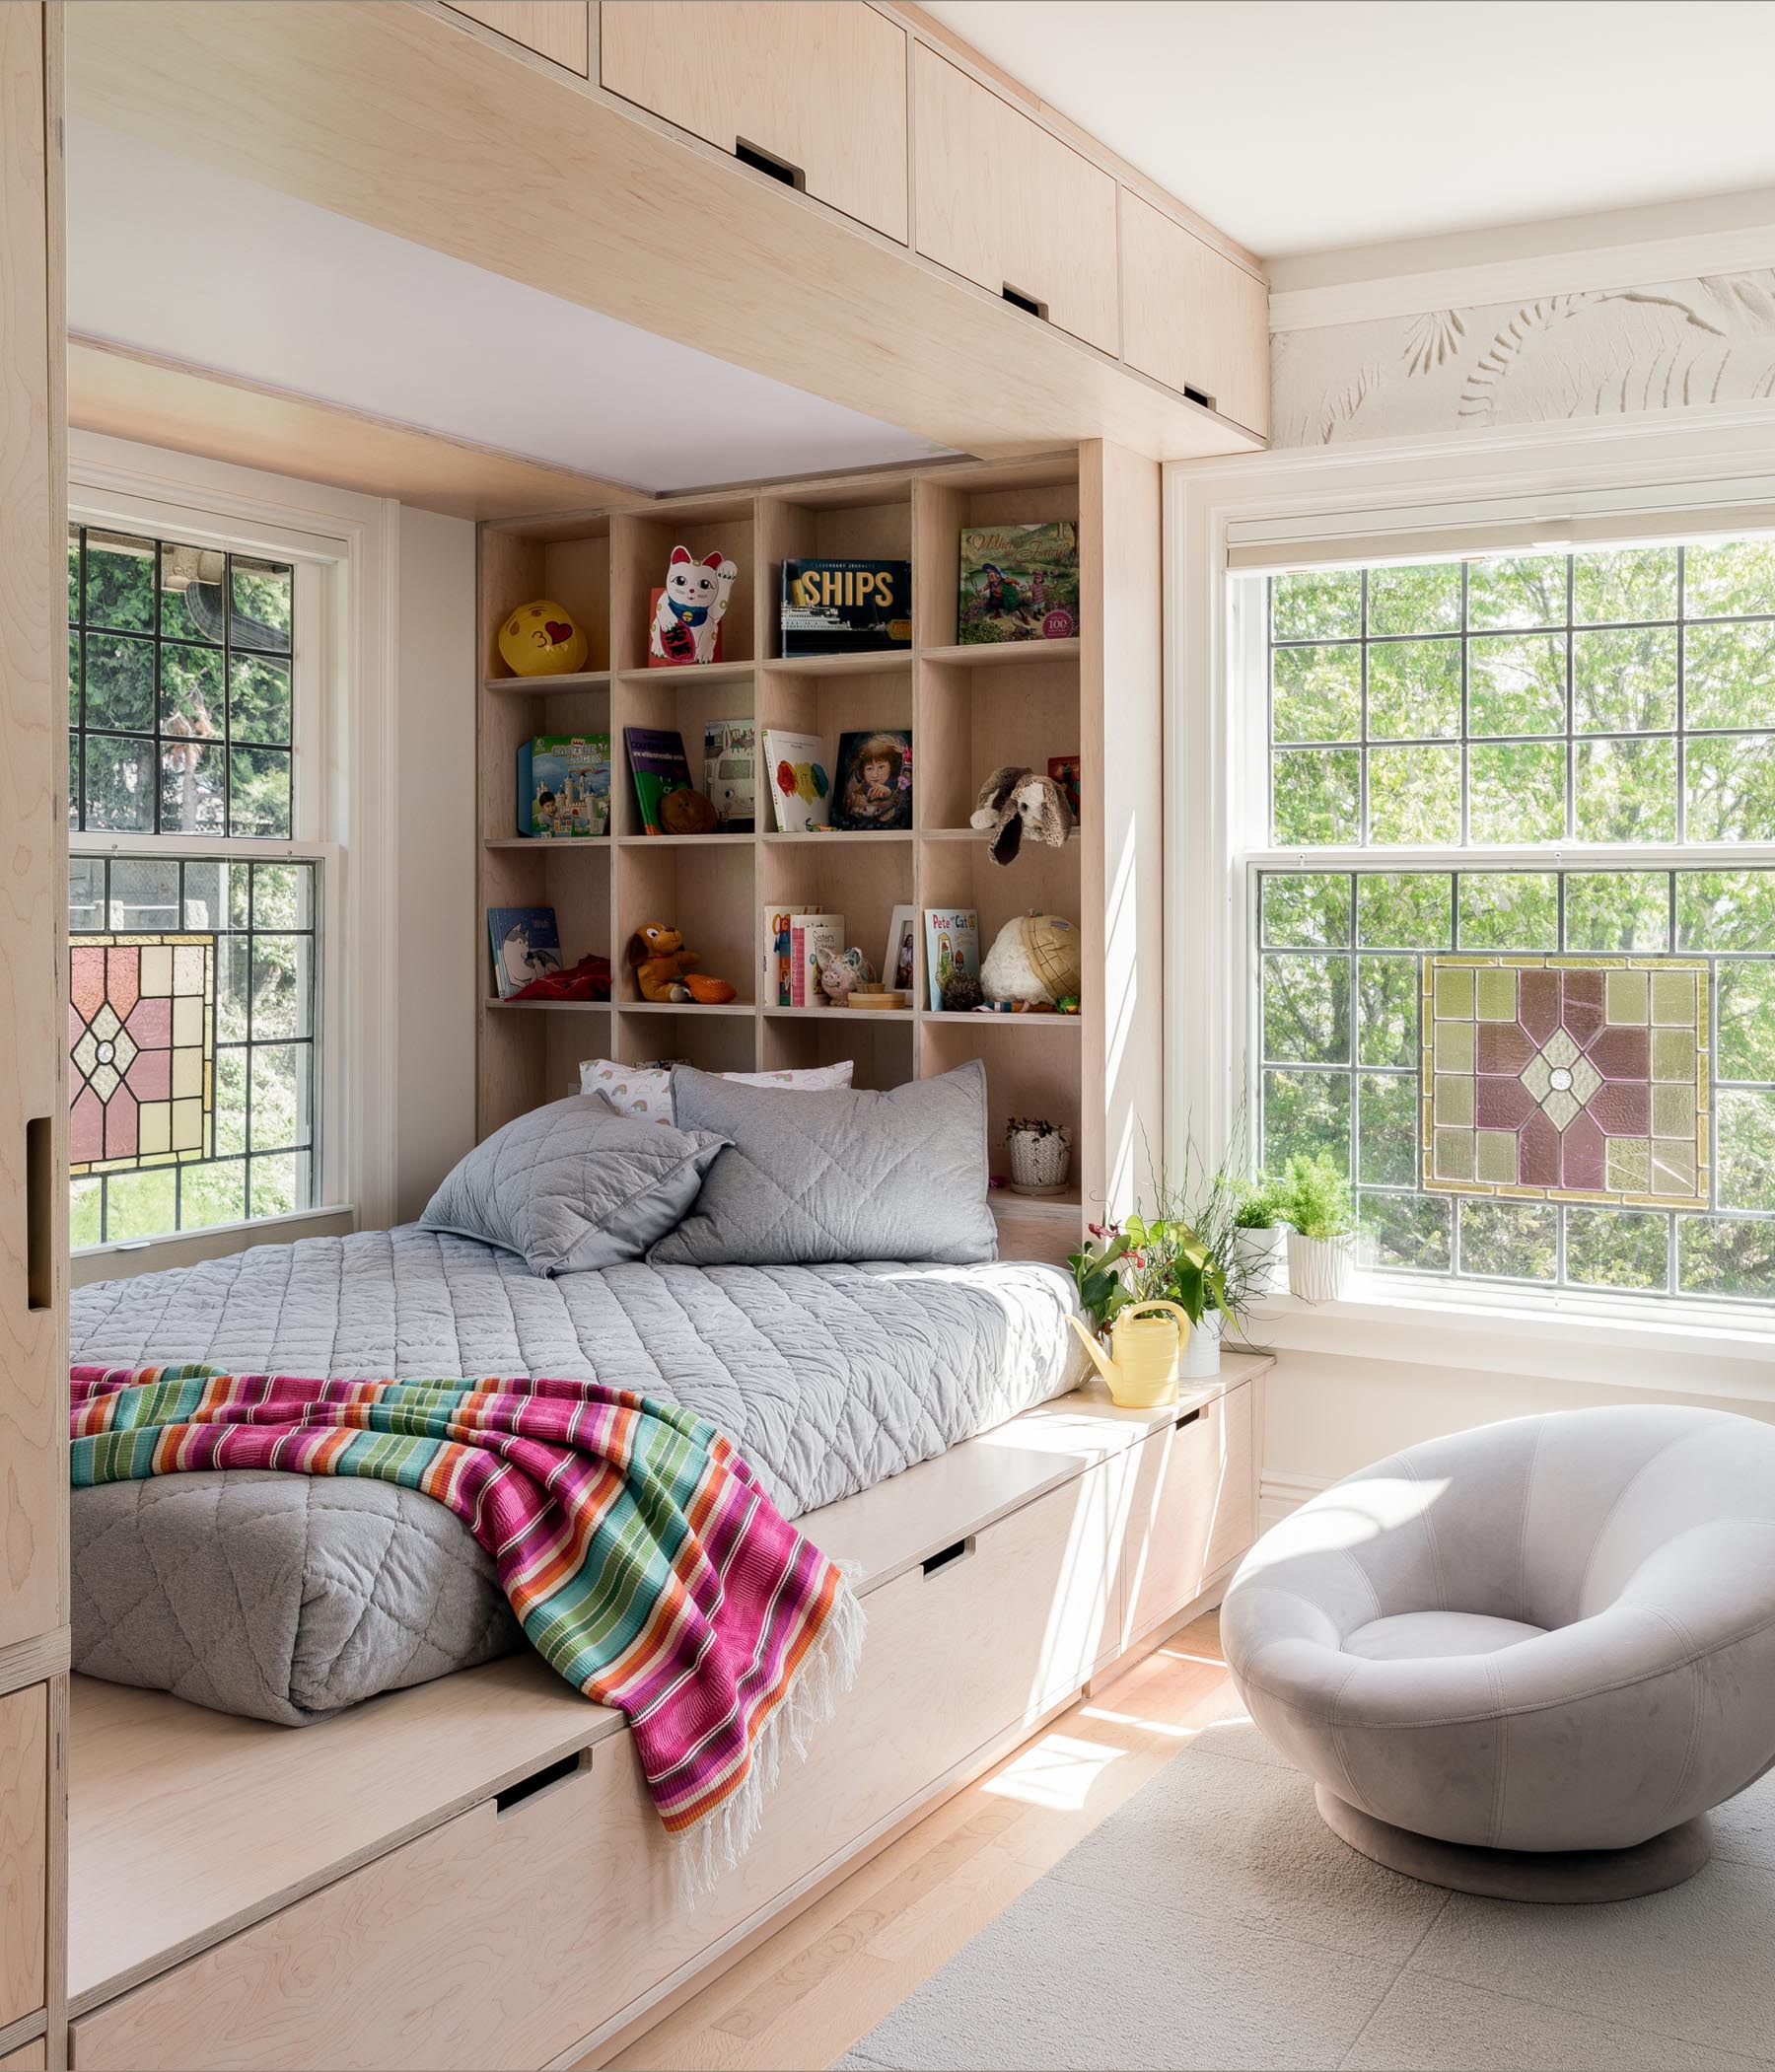 A custom wood bed design has plenty of storage including cabinets, drawers, and open shelving.